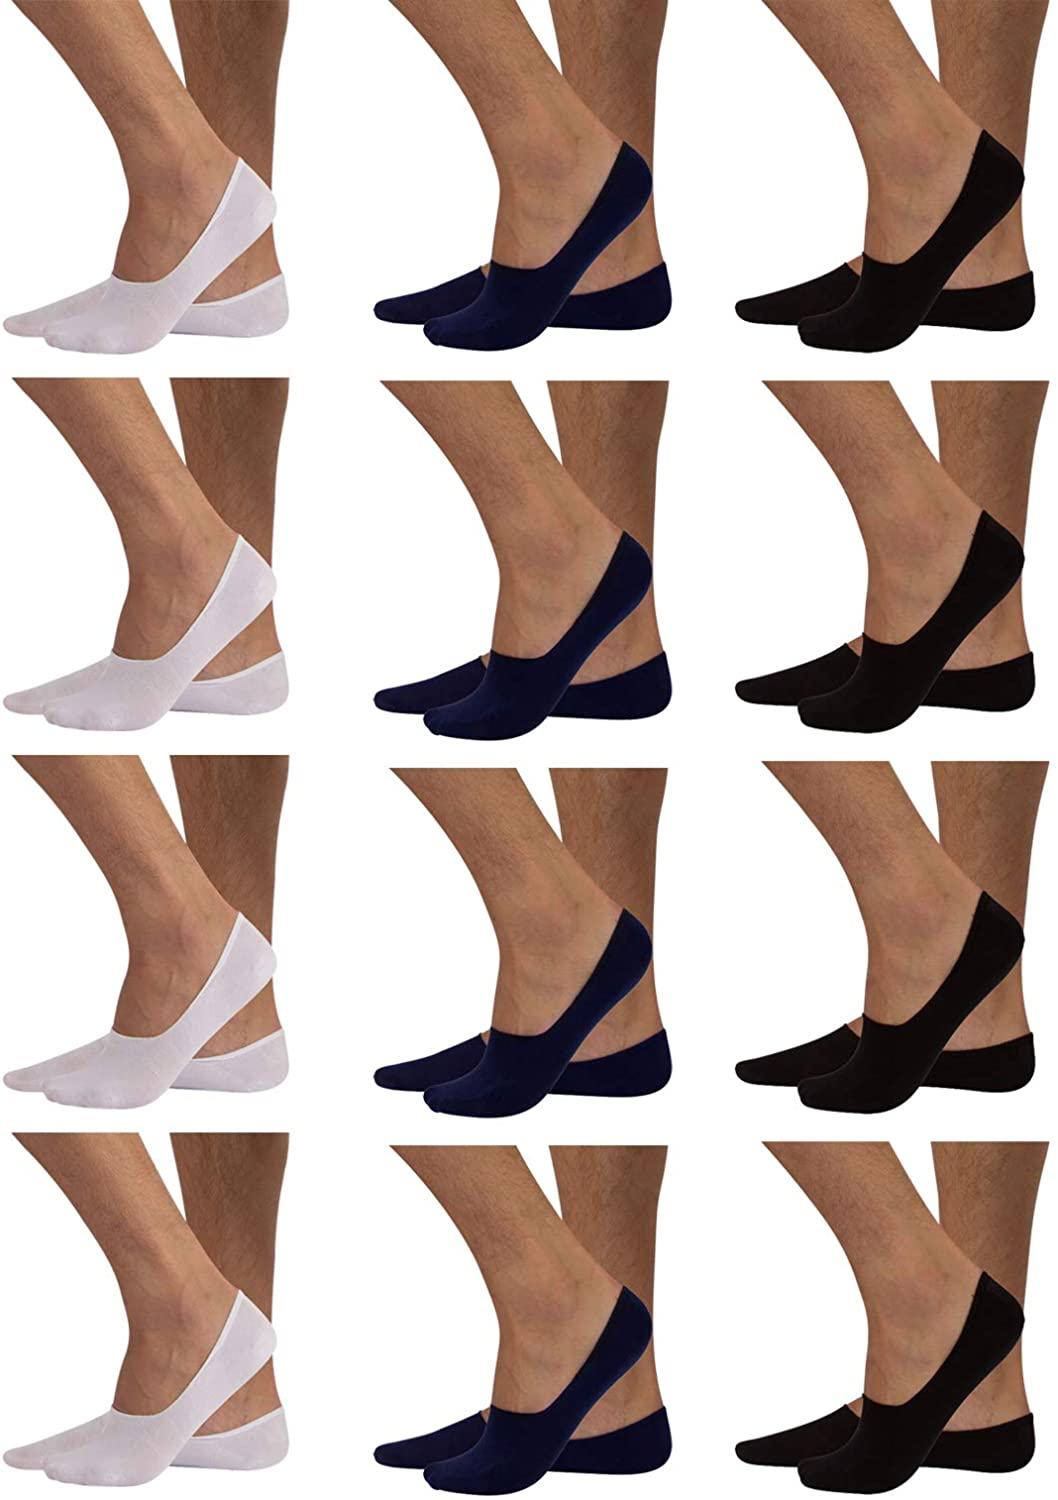 12 PAIRS LINER COTTON SOCKS NON SLIP | MEN'S CASUAL NO SHOW INVISIBLE SOCKS | ITALIAN HOSIERY